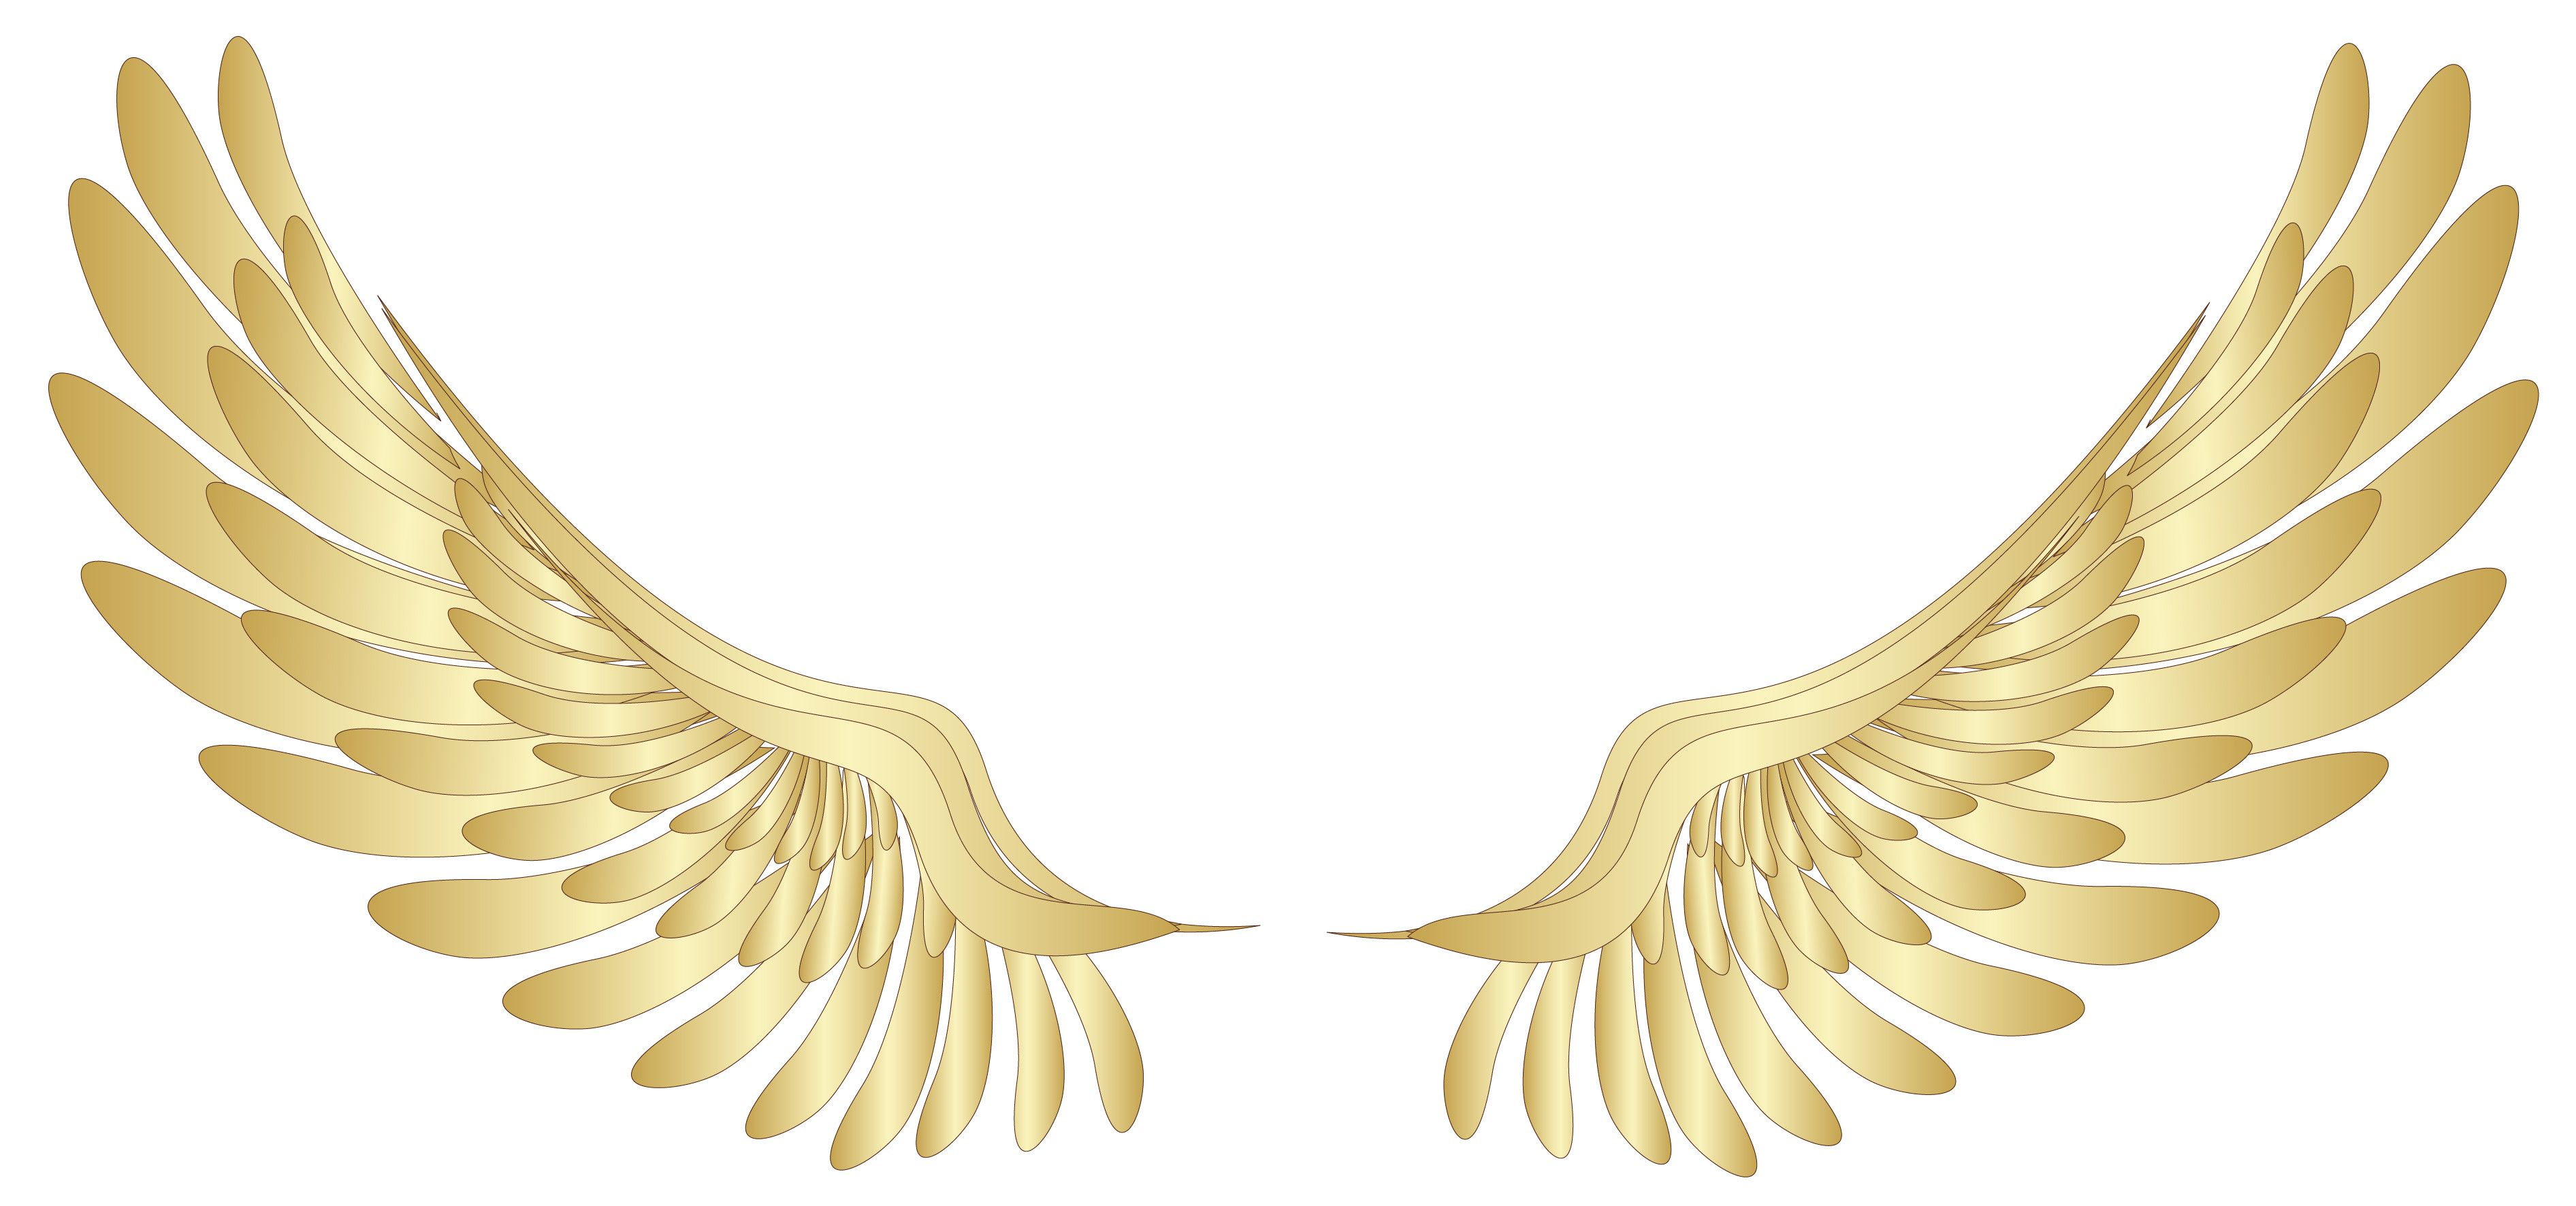 3784x1771 Pin Wings Clipart Transparent Background 11 Angel Wings Png Wings Png Golden Wings